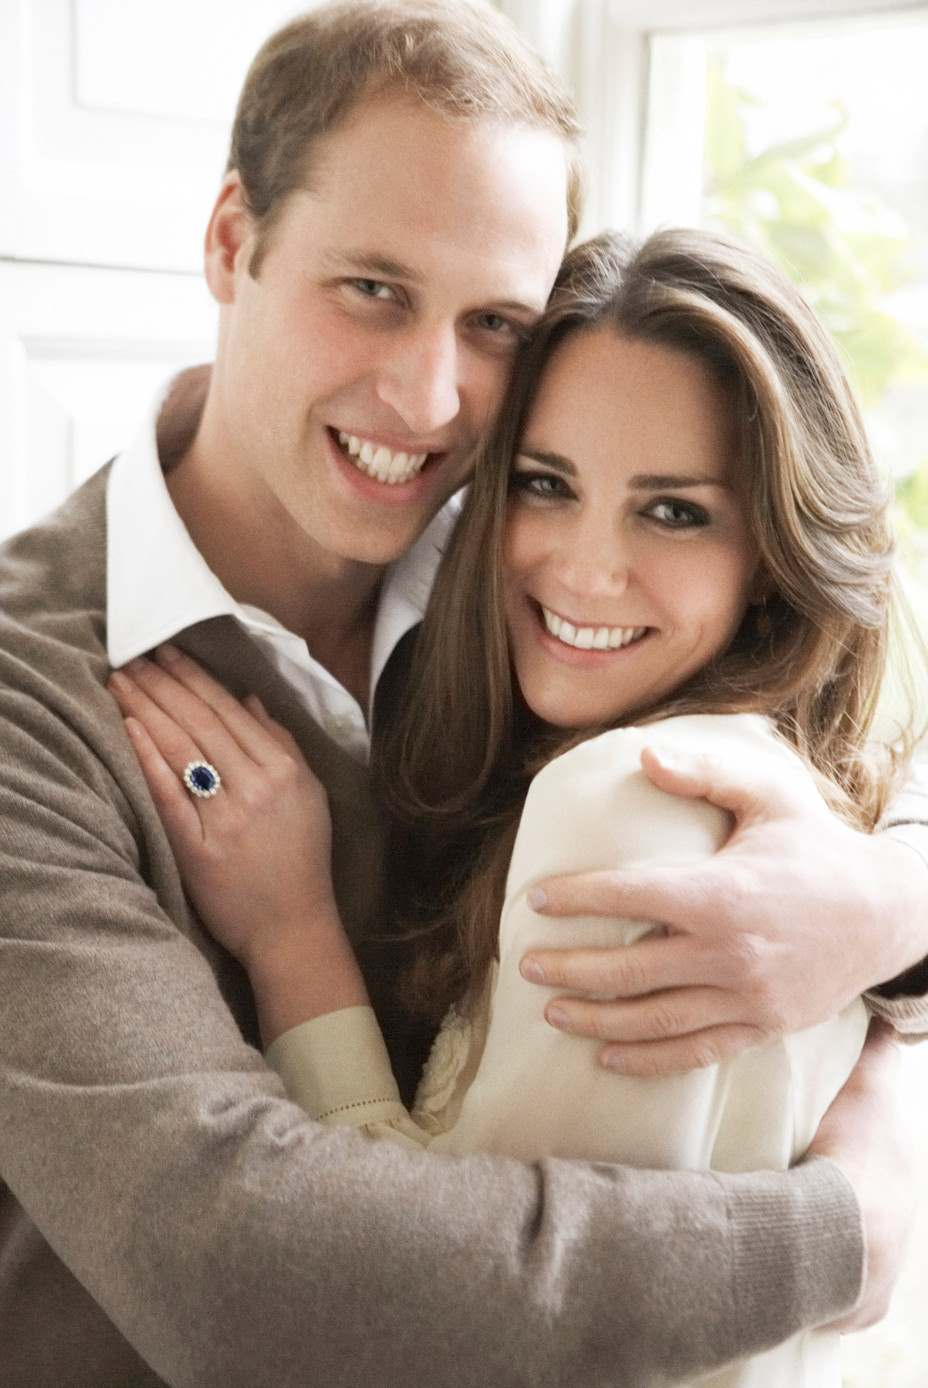 Engagement of William and Kate